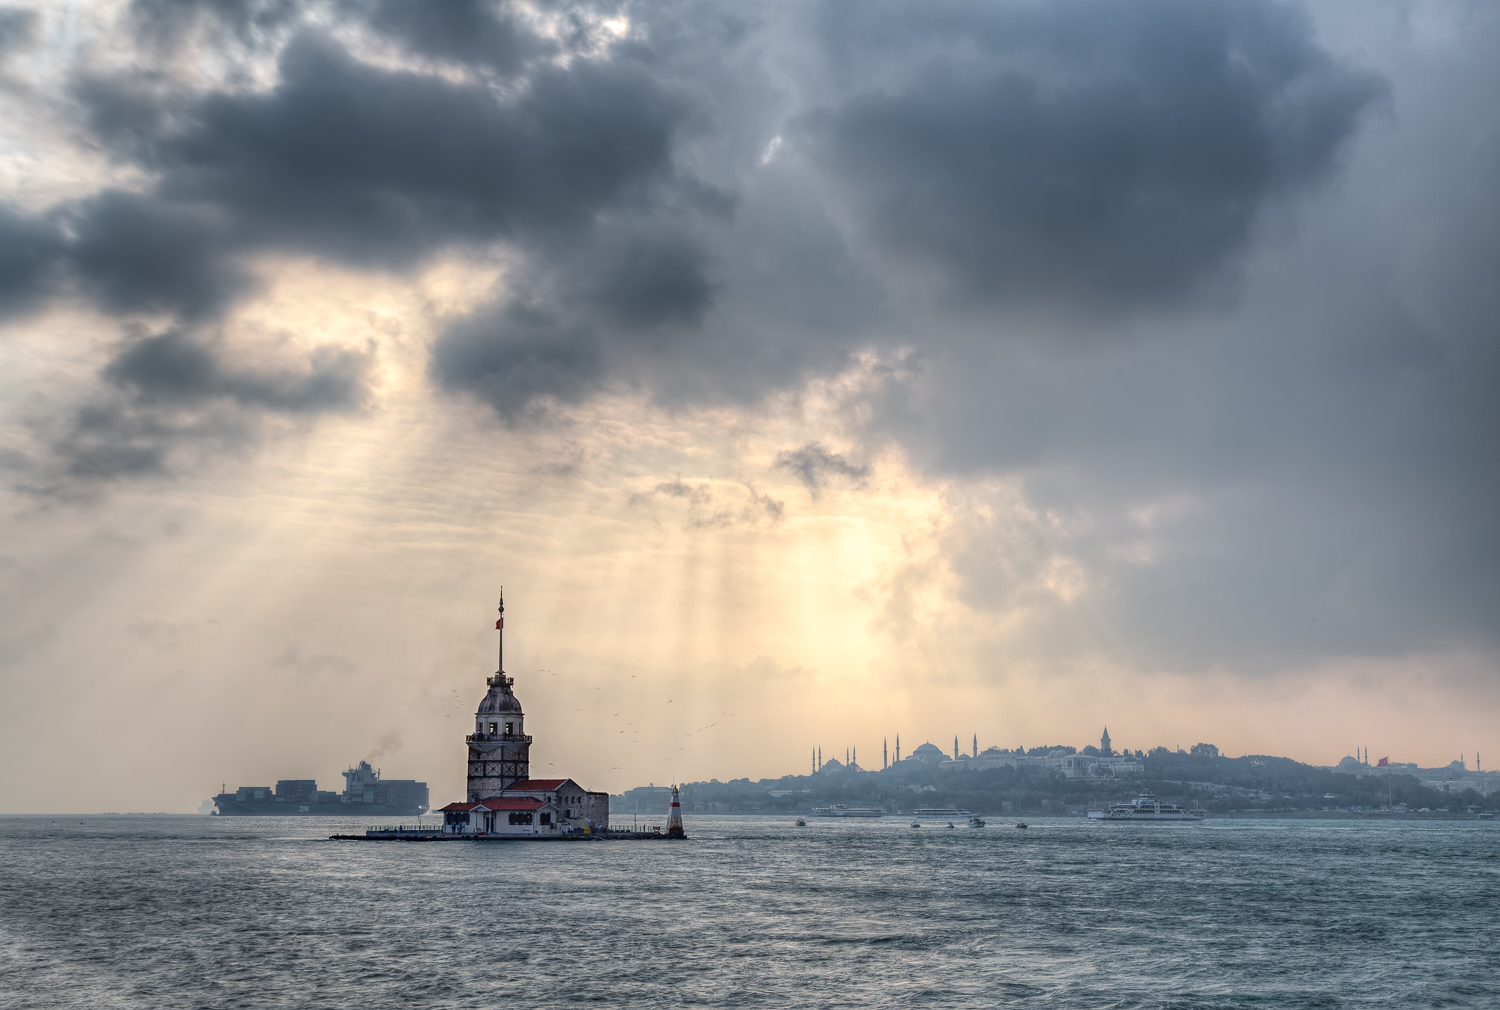 The Maiden's Tower (Kız Kulesi in Turkish), is also known as Leander's Tower since the medieval Byzantine period. It's located on a small islet 200m from the coast of Üsküdar in Istanbul.